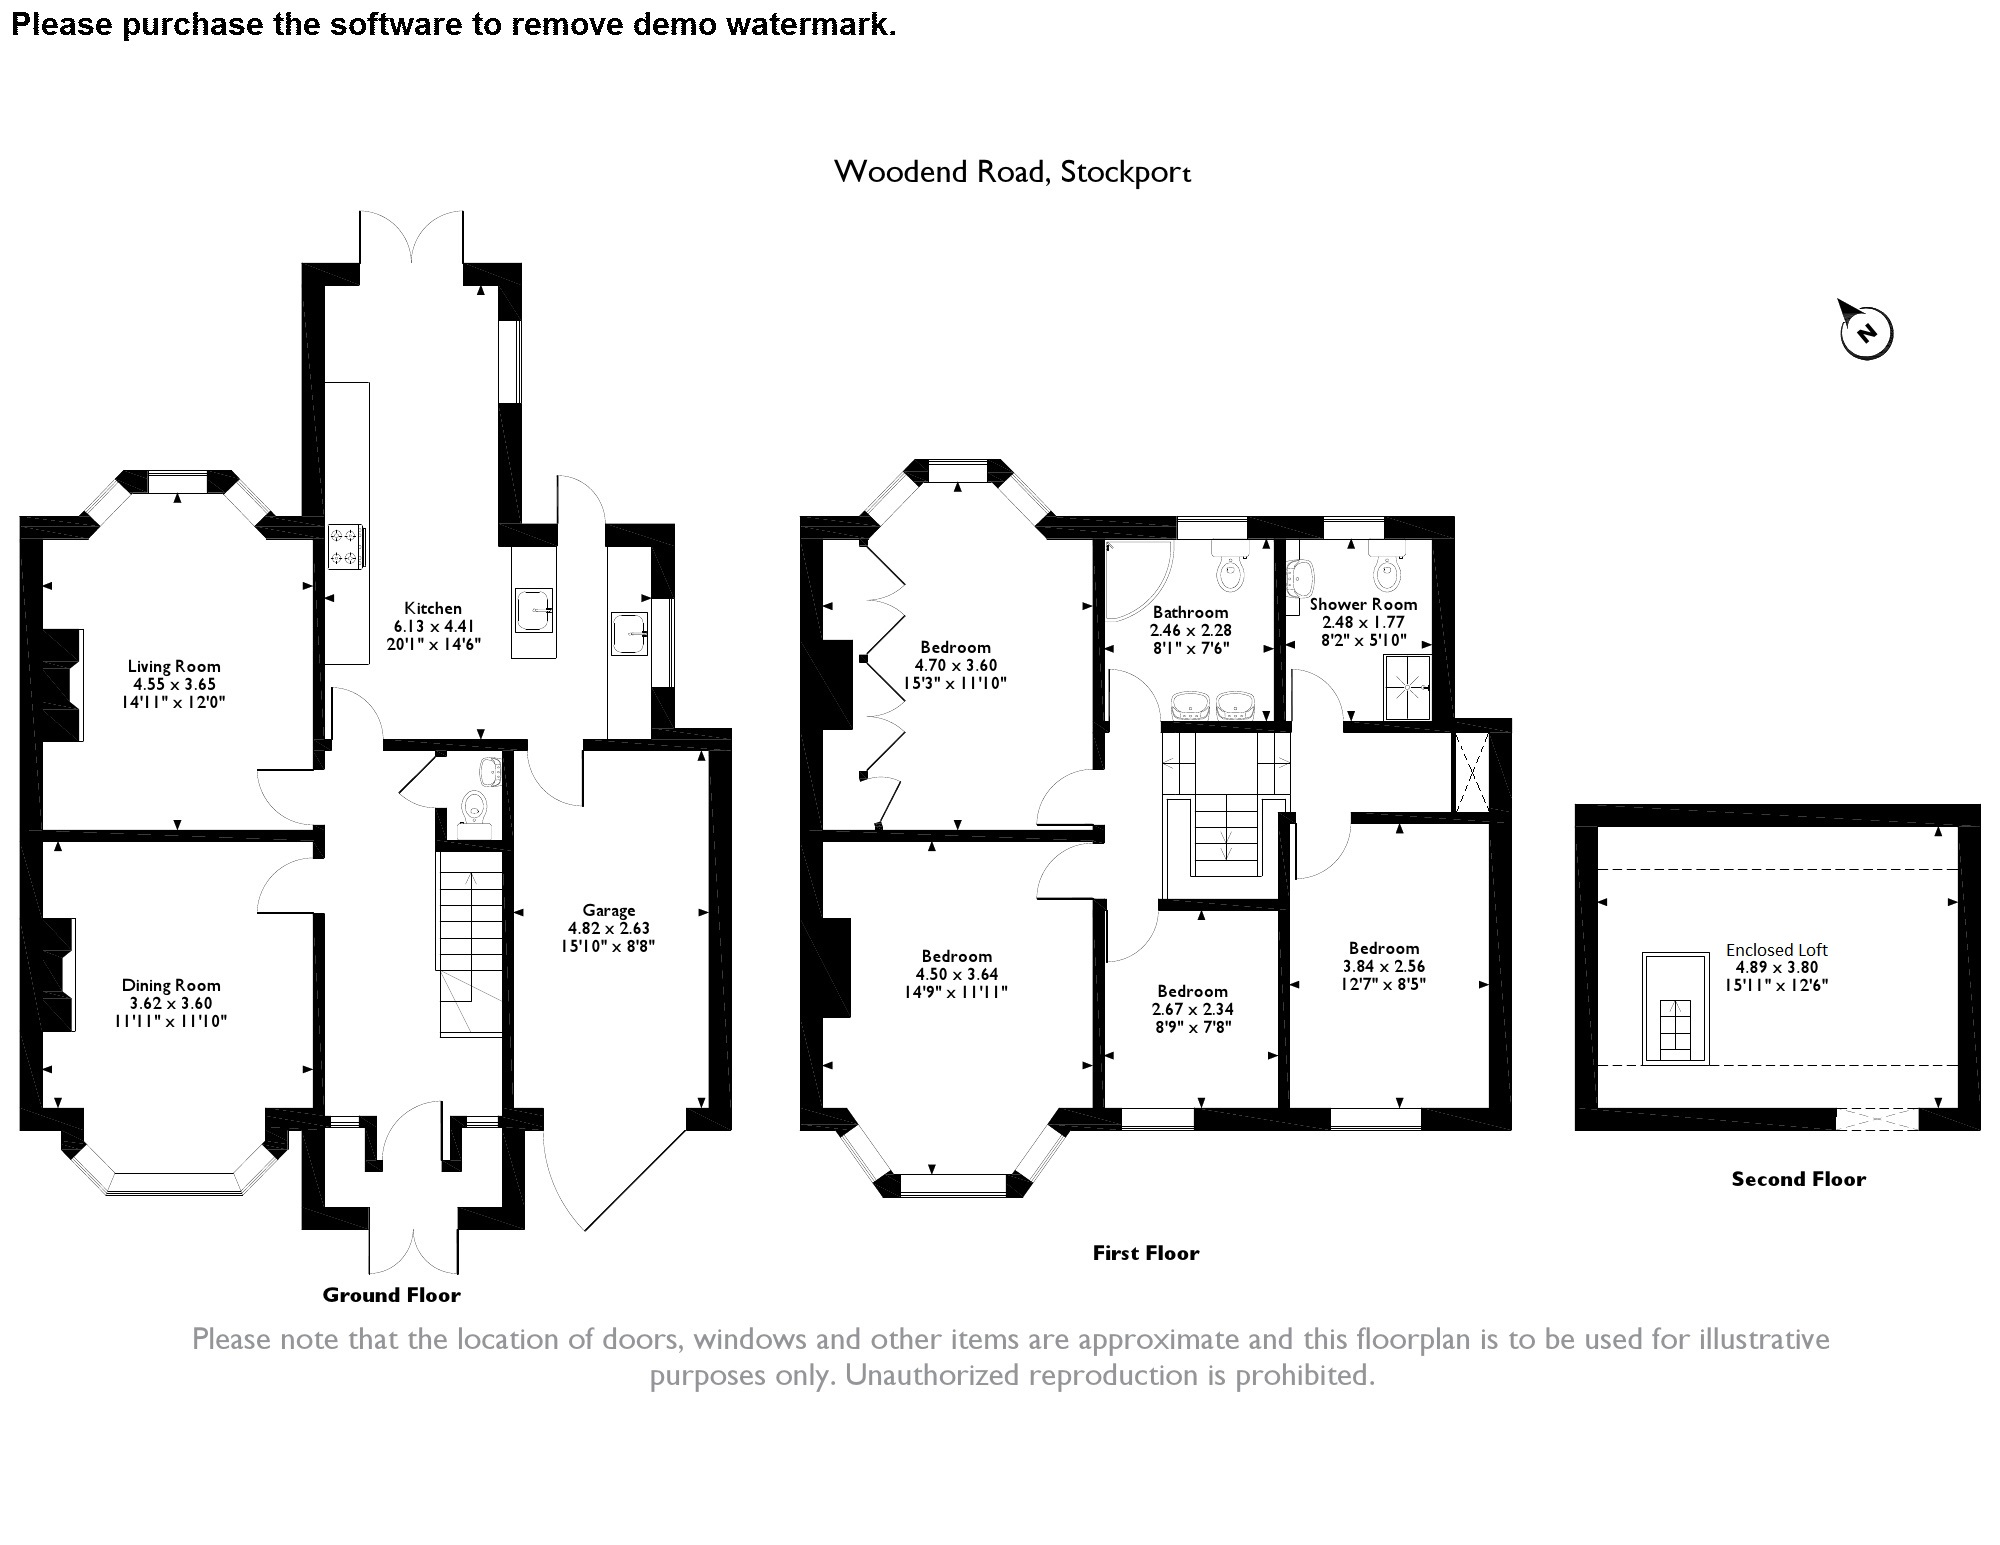 Woodend Road, Stockport, SK3 floor plan